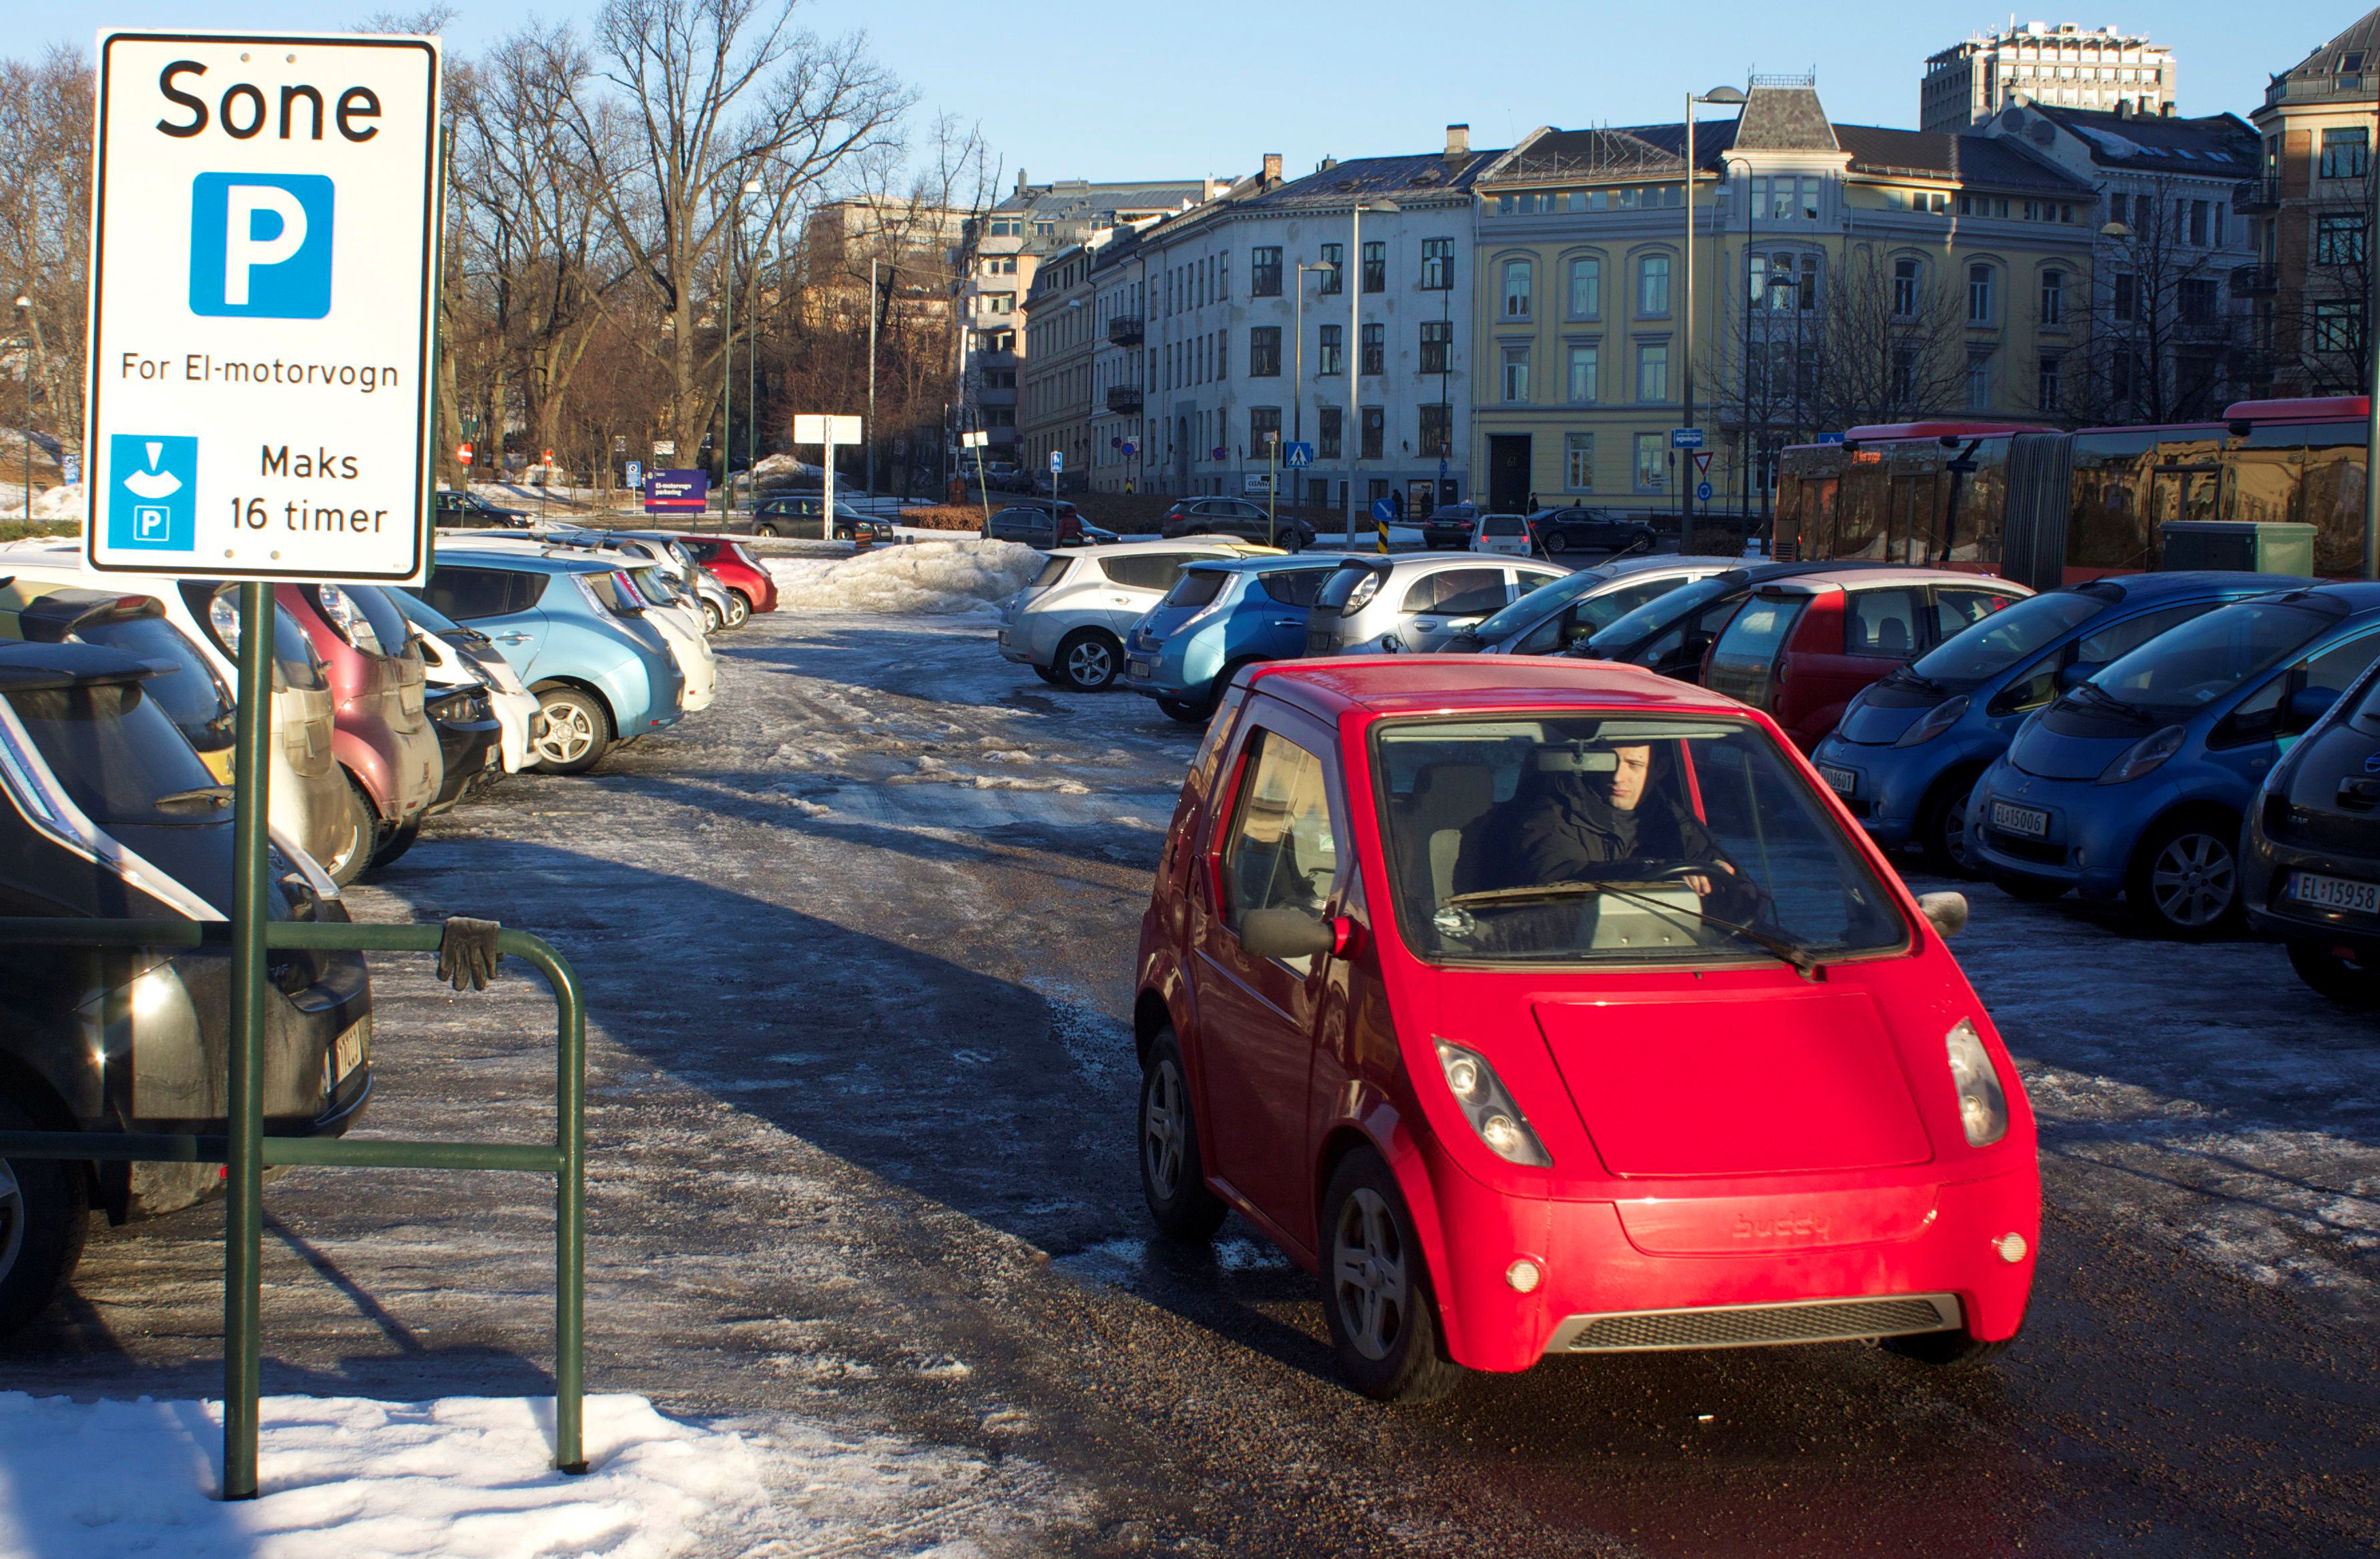 A driver leaves a free car park reserved for electric vehicles in Oslo, Norway, February 25, 2013.